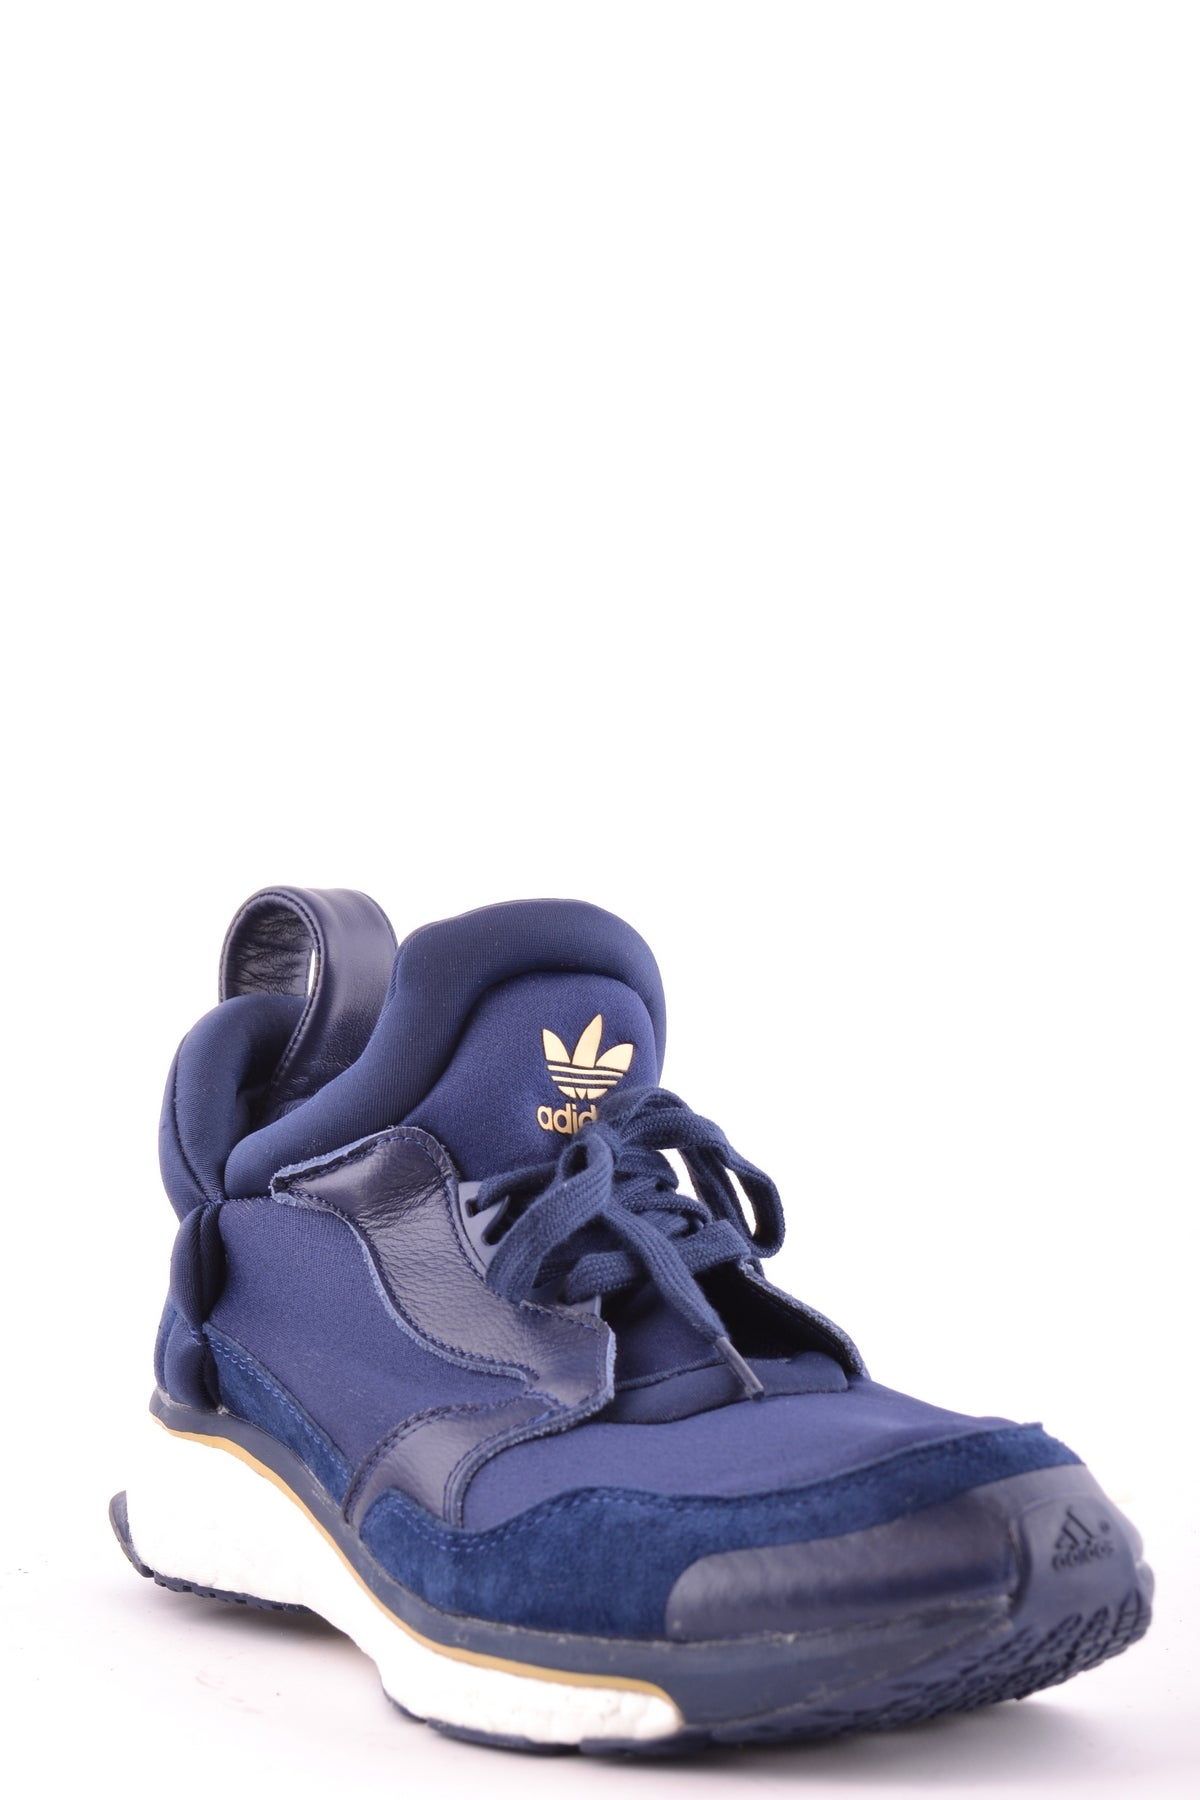 Shoes Adidas-Sneakers - Shoes-Product Details Type Of Accessory: ShoesTerms: New With LabelHeel'S Height: 3Main Color: BlueGender: ManMade In: VietnamSize: UkYear: 2017Season: Spring / SummerPlatform'S Height: 1Composition: Leather 20%, Tissue 80%-Keyomi-Sook